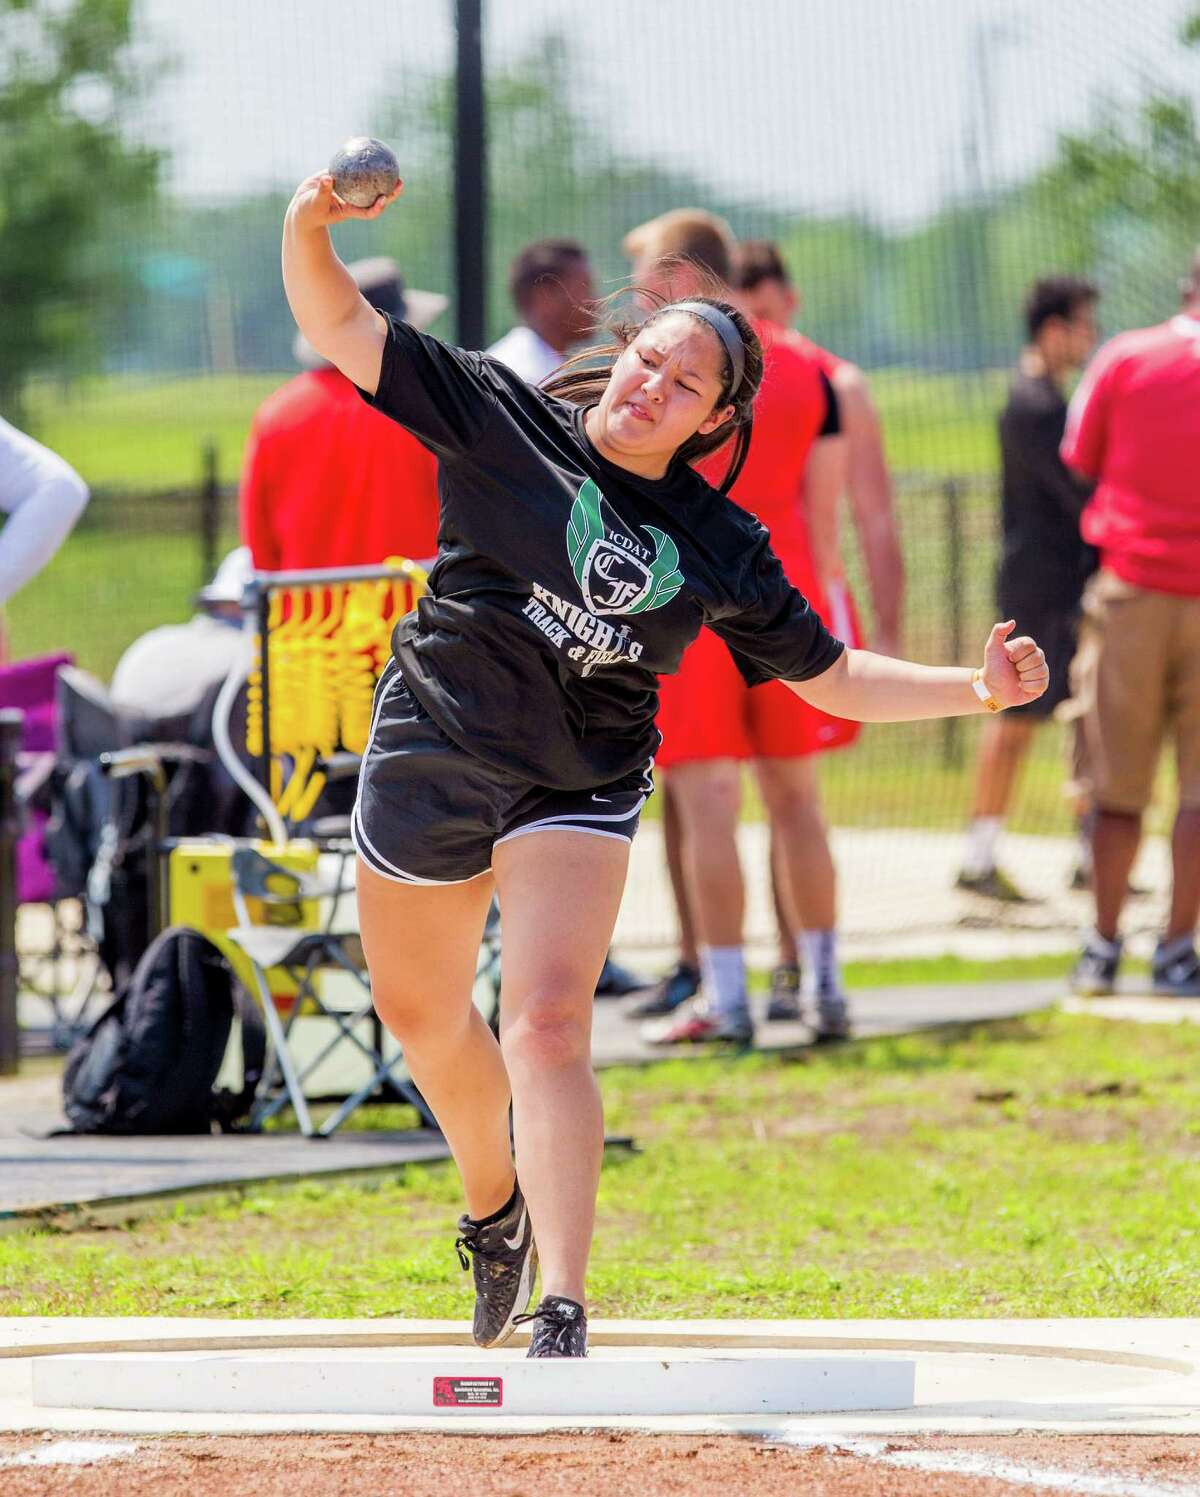 Cynthia Garza of throwing the put during the girls shot put competition during UIL Region II 6-A Track & Field Championship at the Challenger Columbia Stadium, Friday, Apr. 29, 2016, in Houston. (Juan DeLeon / For the Houston Chronicle)